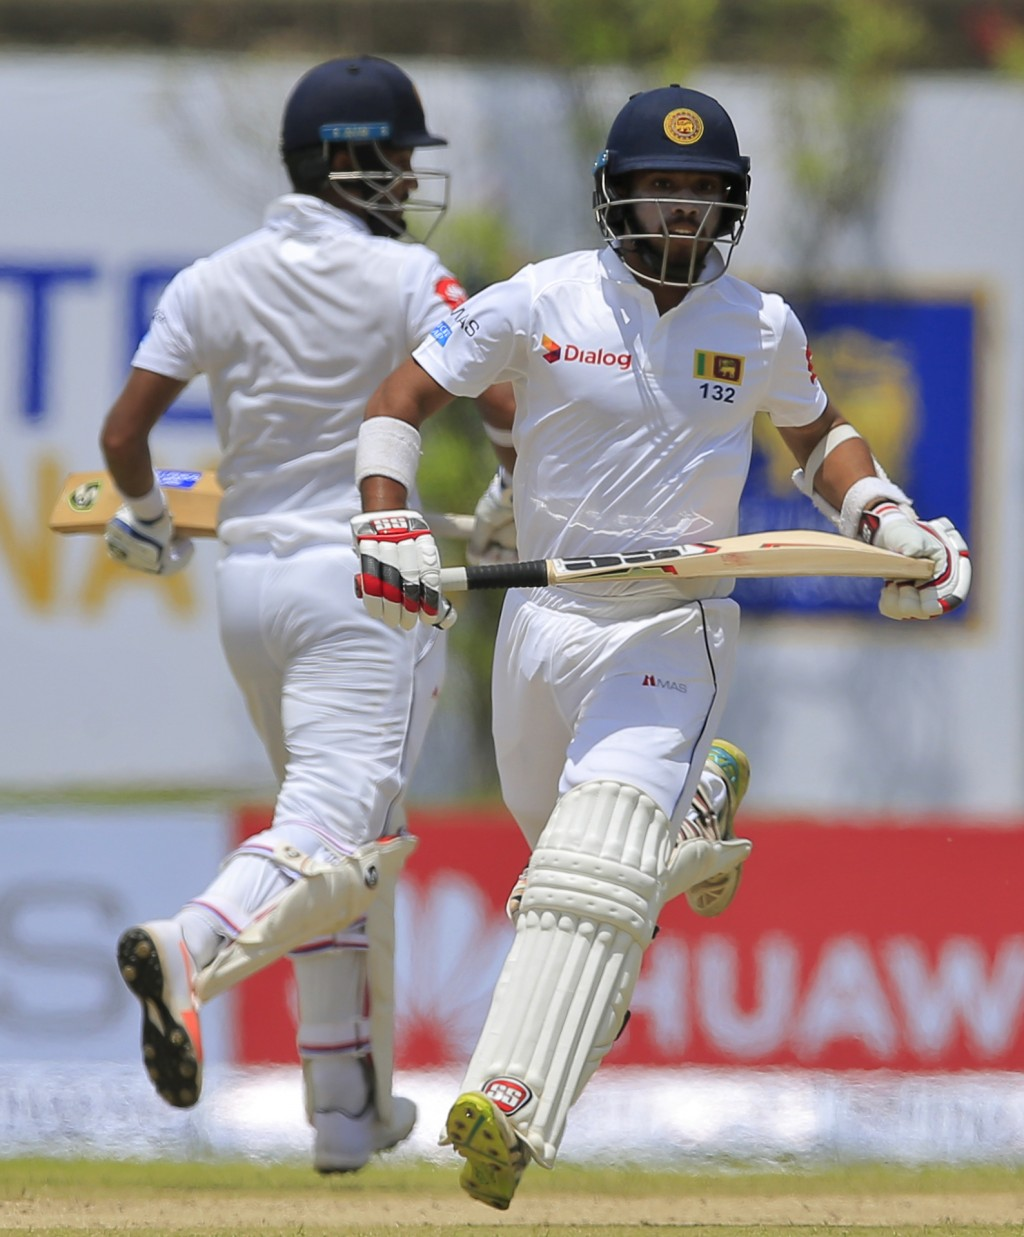 Sri Lanka's Dimuth Karunaratne, left, and Kusal Mendis run between wickets against South Africa during the first day's play of their first test cricke